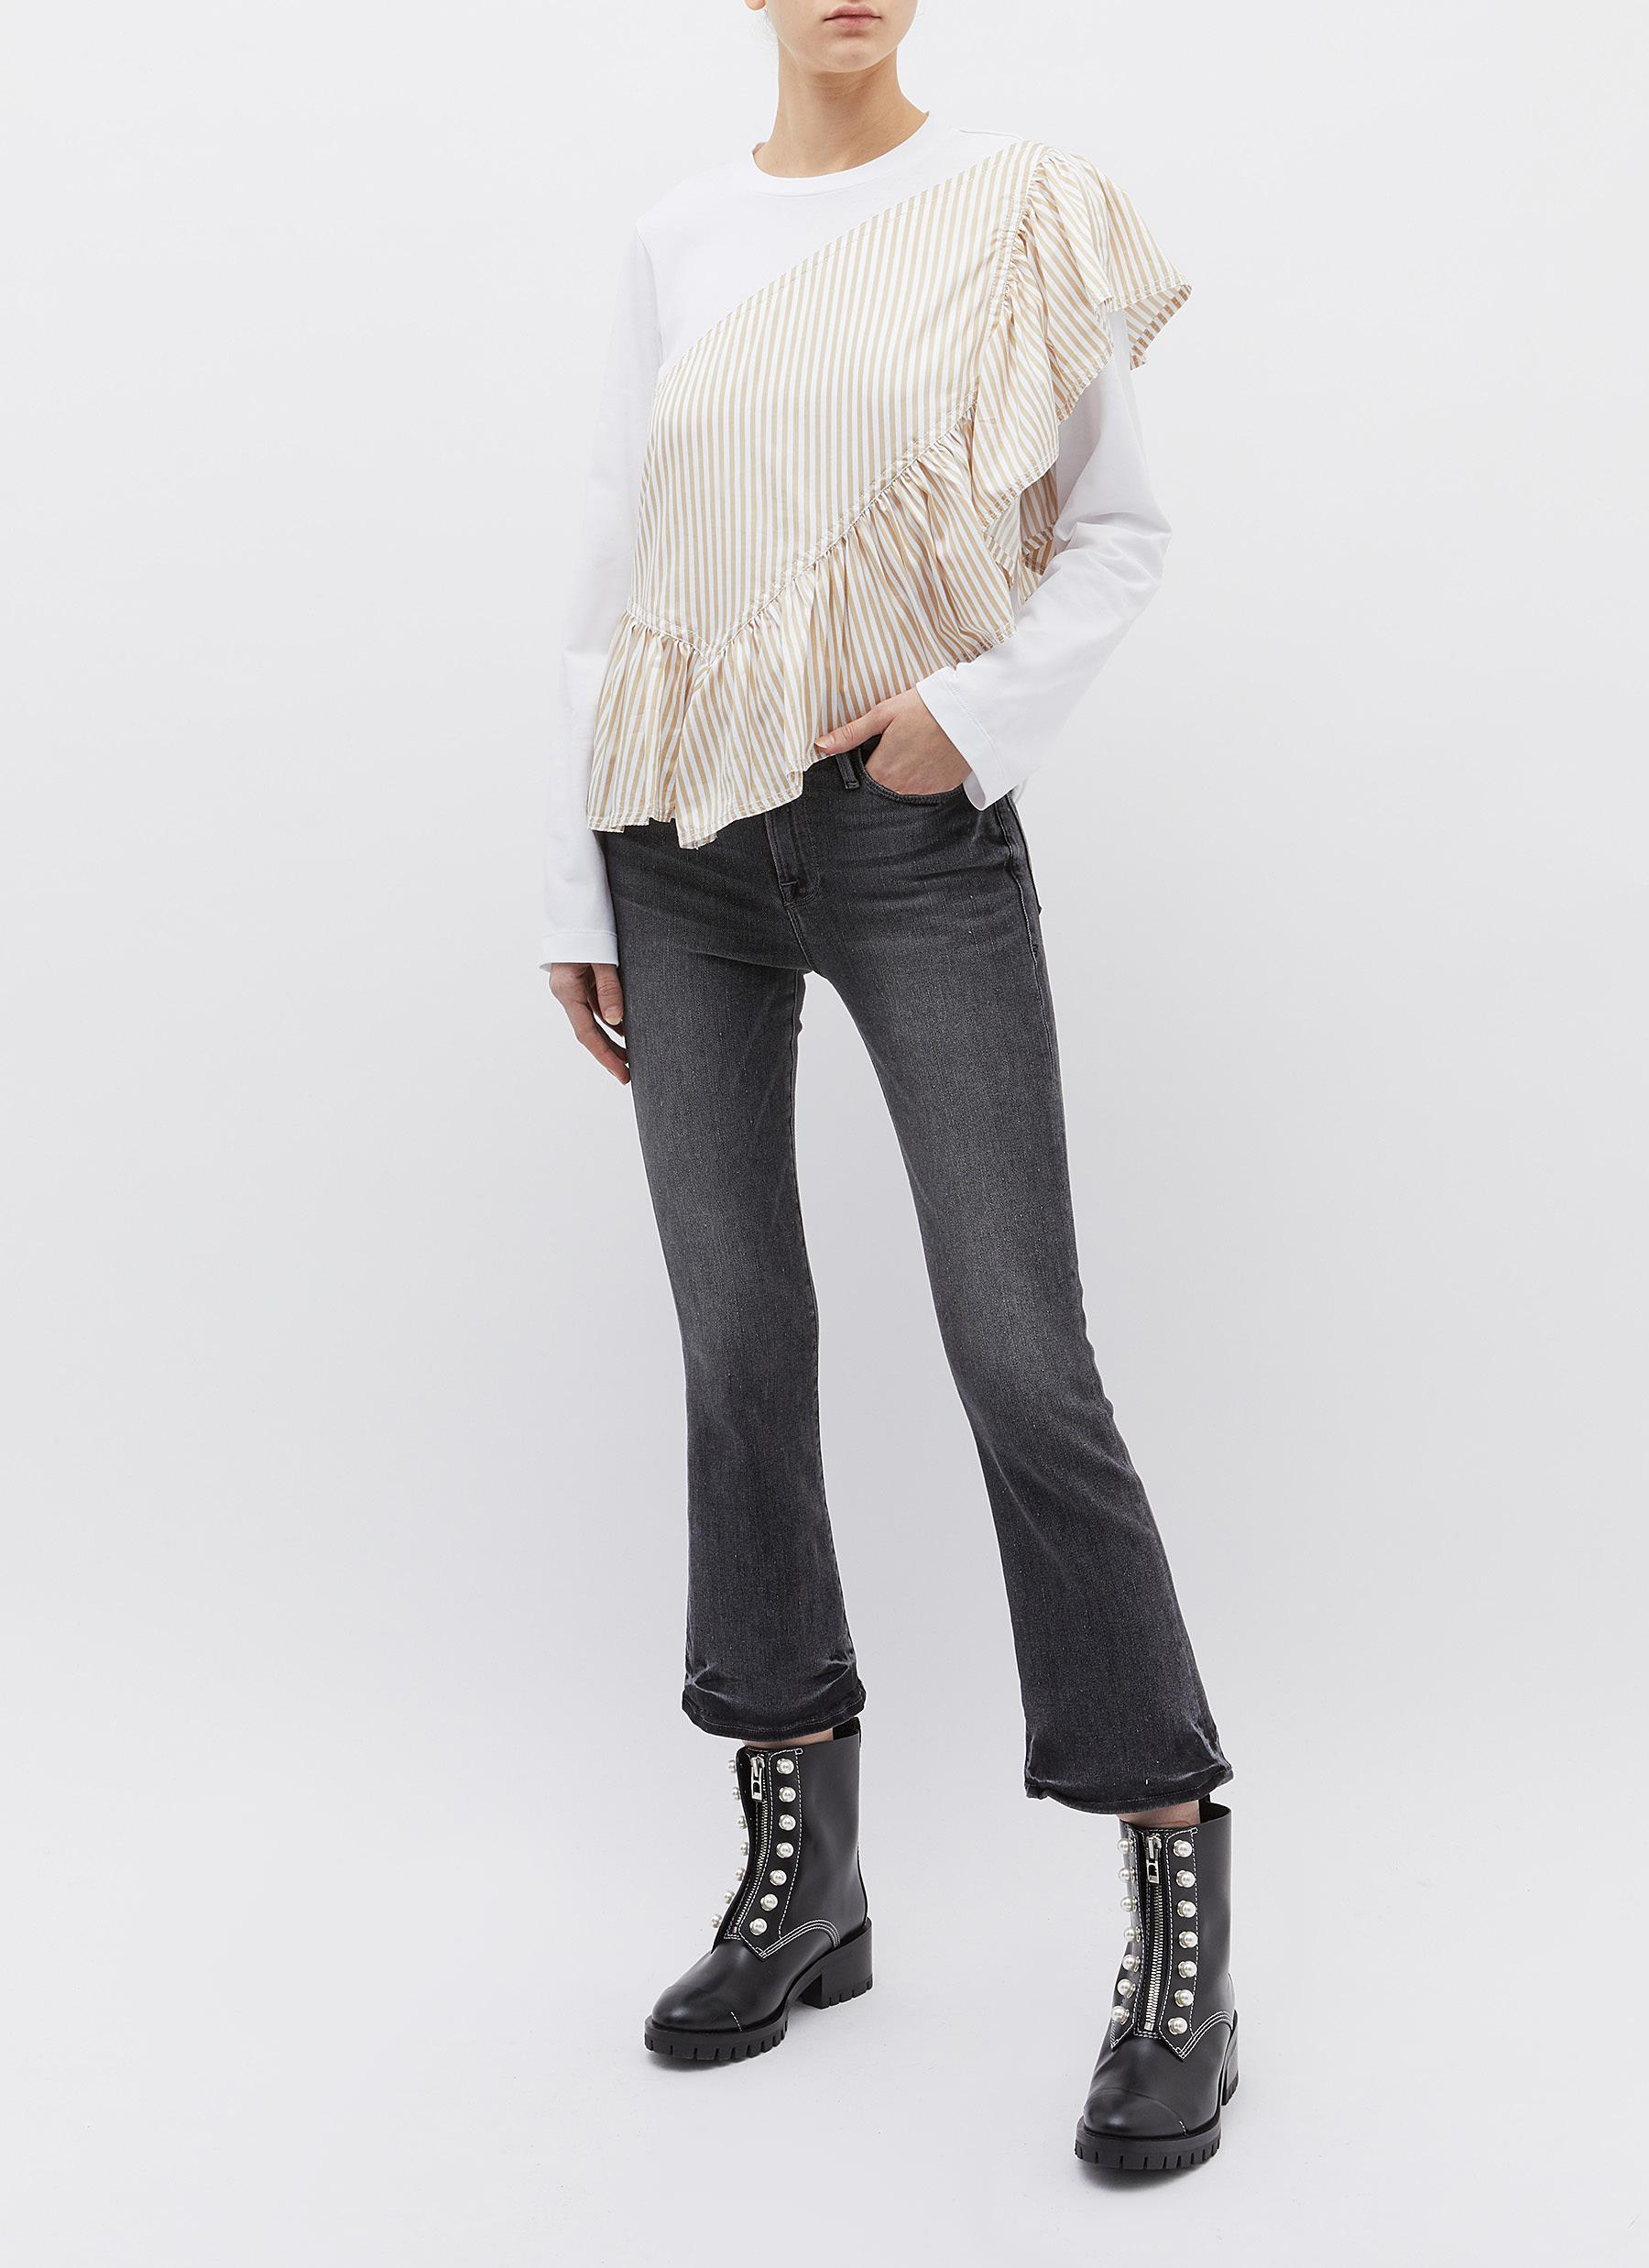 576eaa31727c Lyst - 3.1 Phillip Lim 'flamenco' Ruffle Stripe Panel Long Sleeve T ...